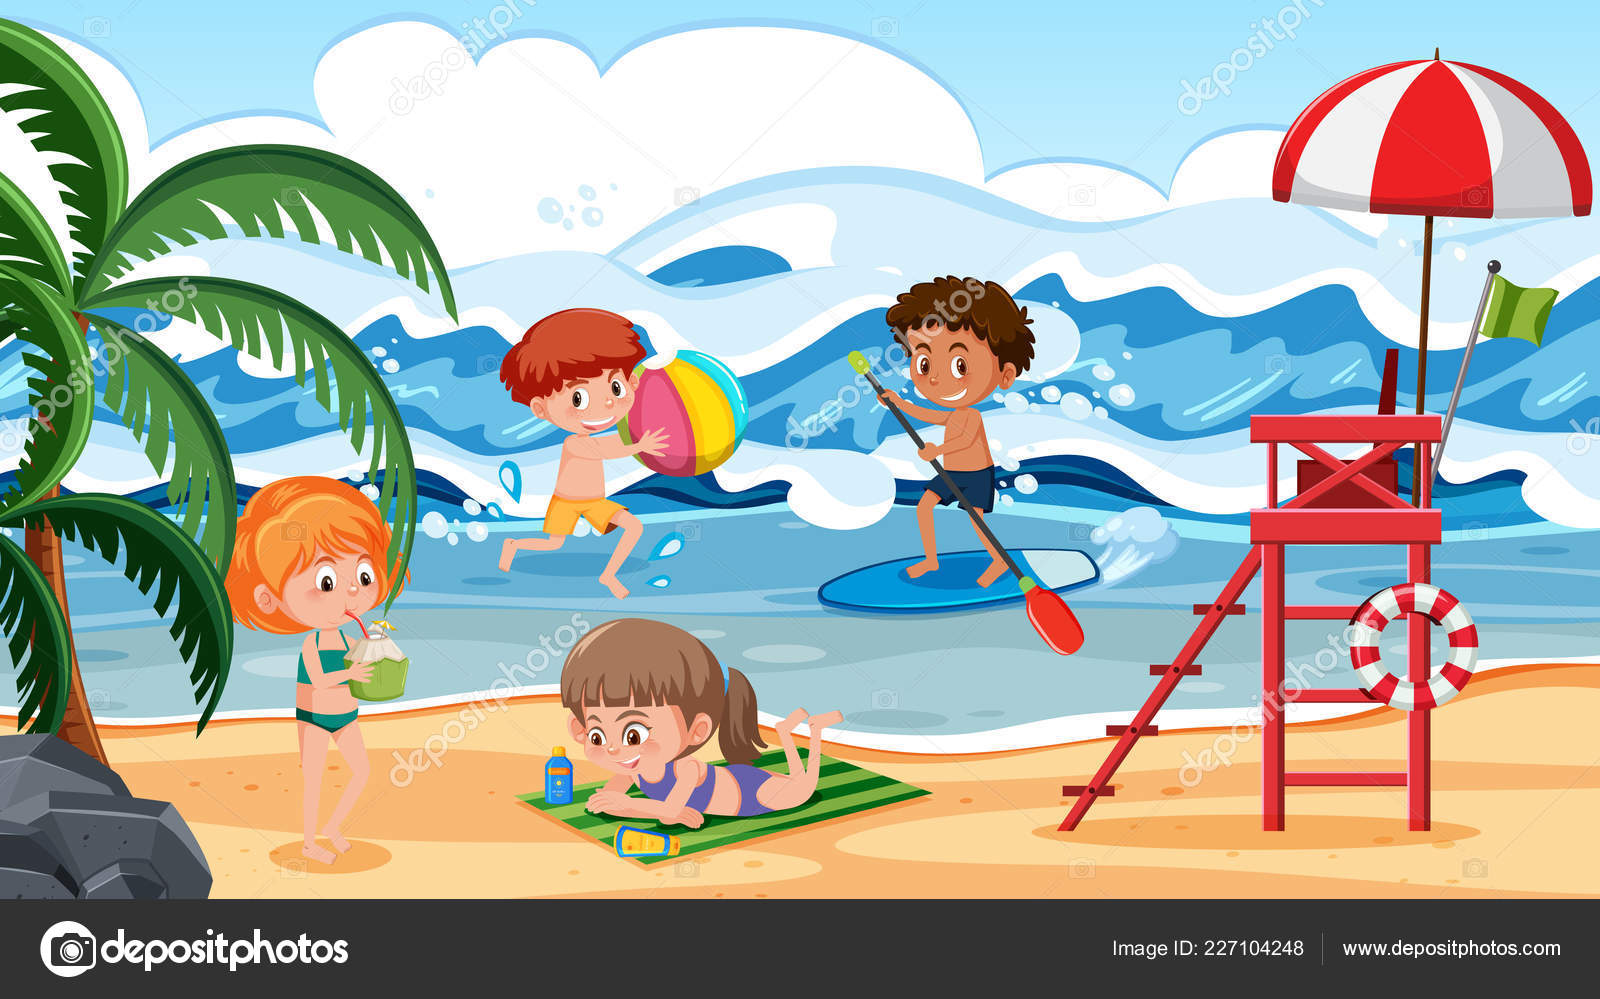 Children Having Fun Beach Scene Illustration — Stock Vector © brgfx.